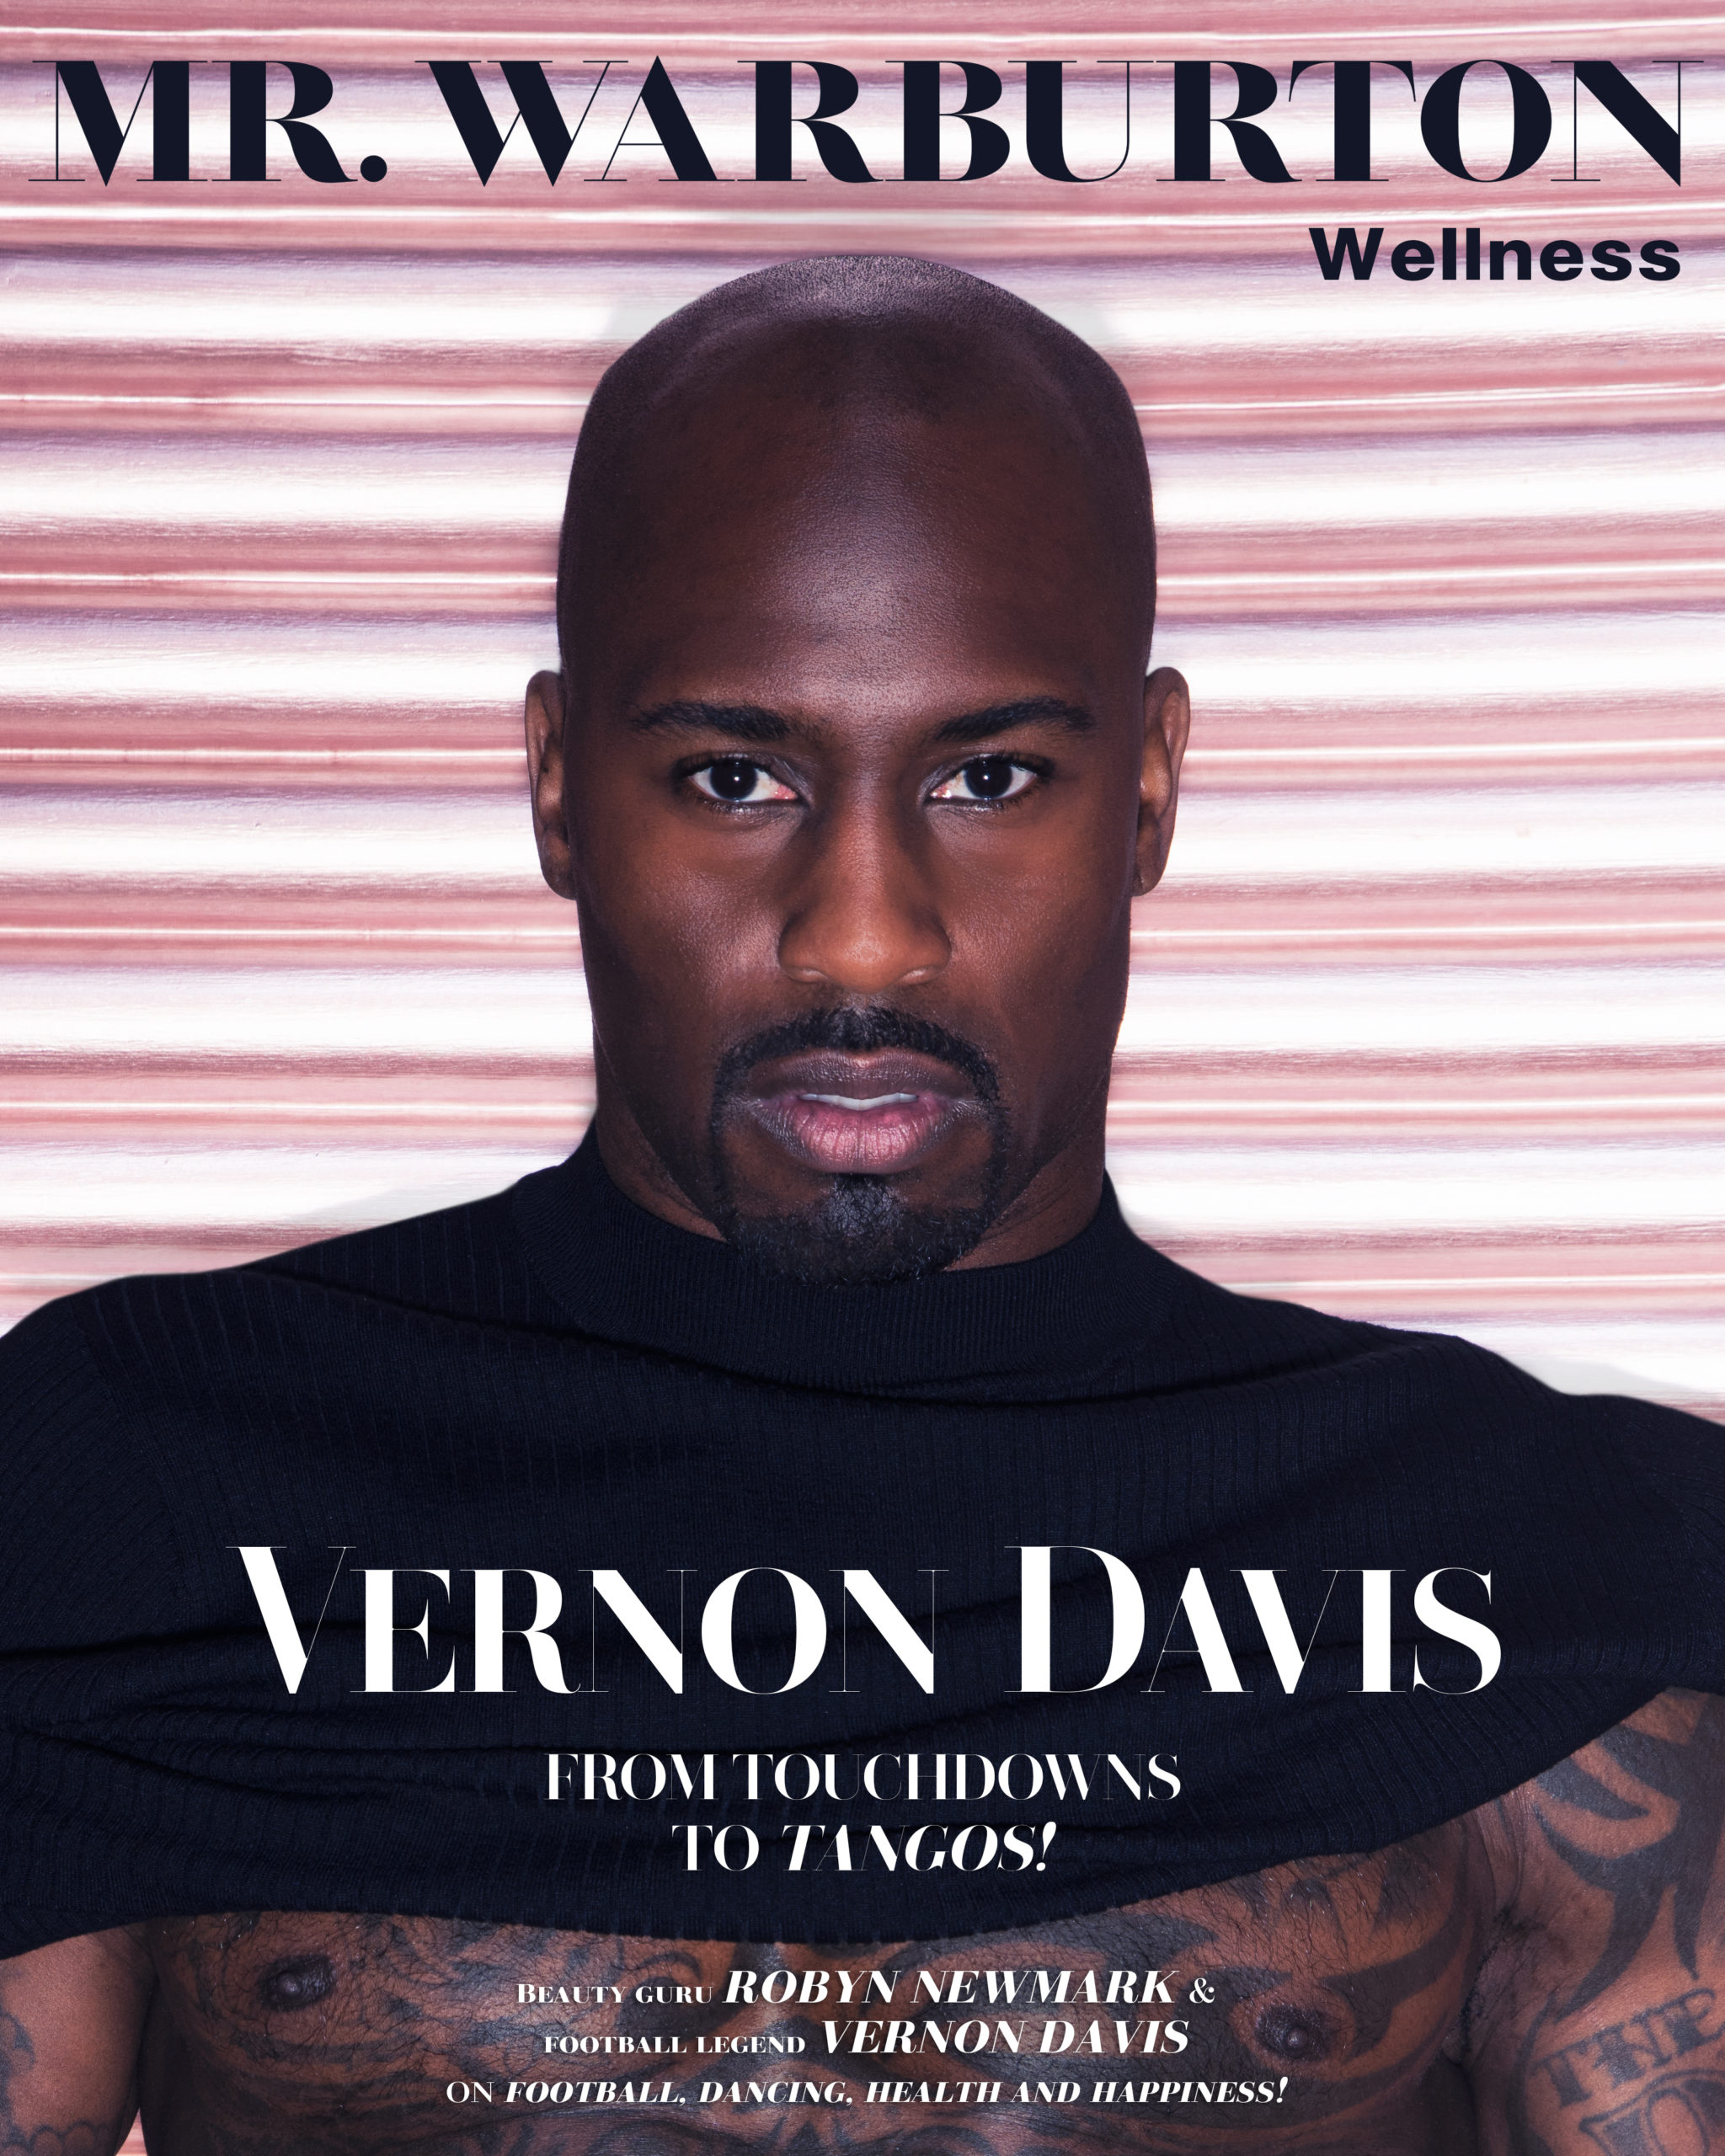 Mr. Warburton Magazine Vernon Davis